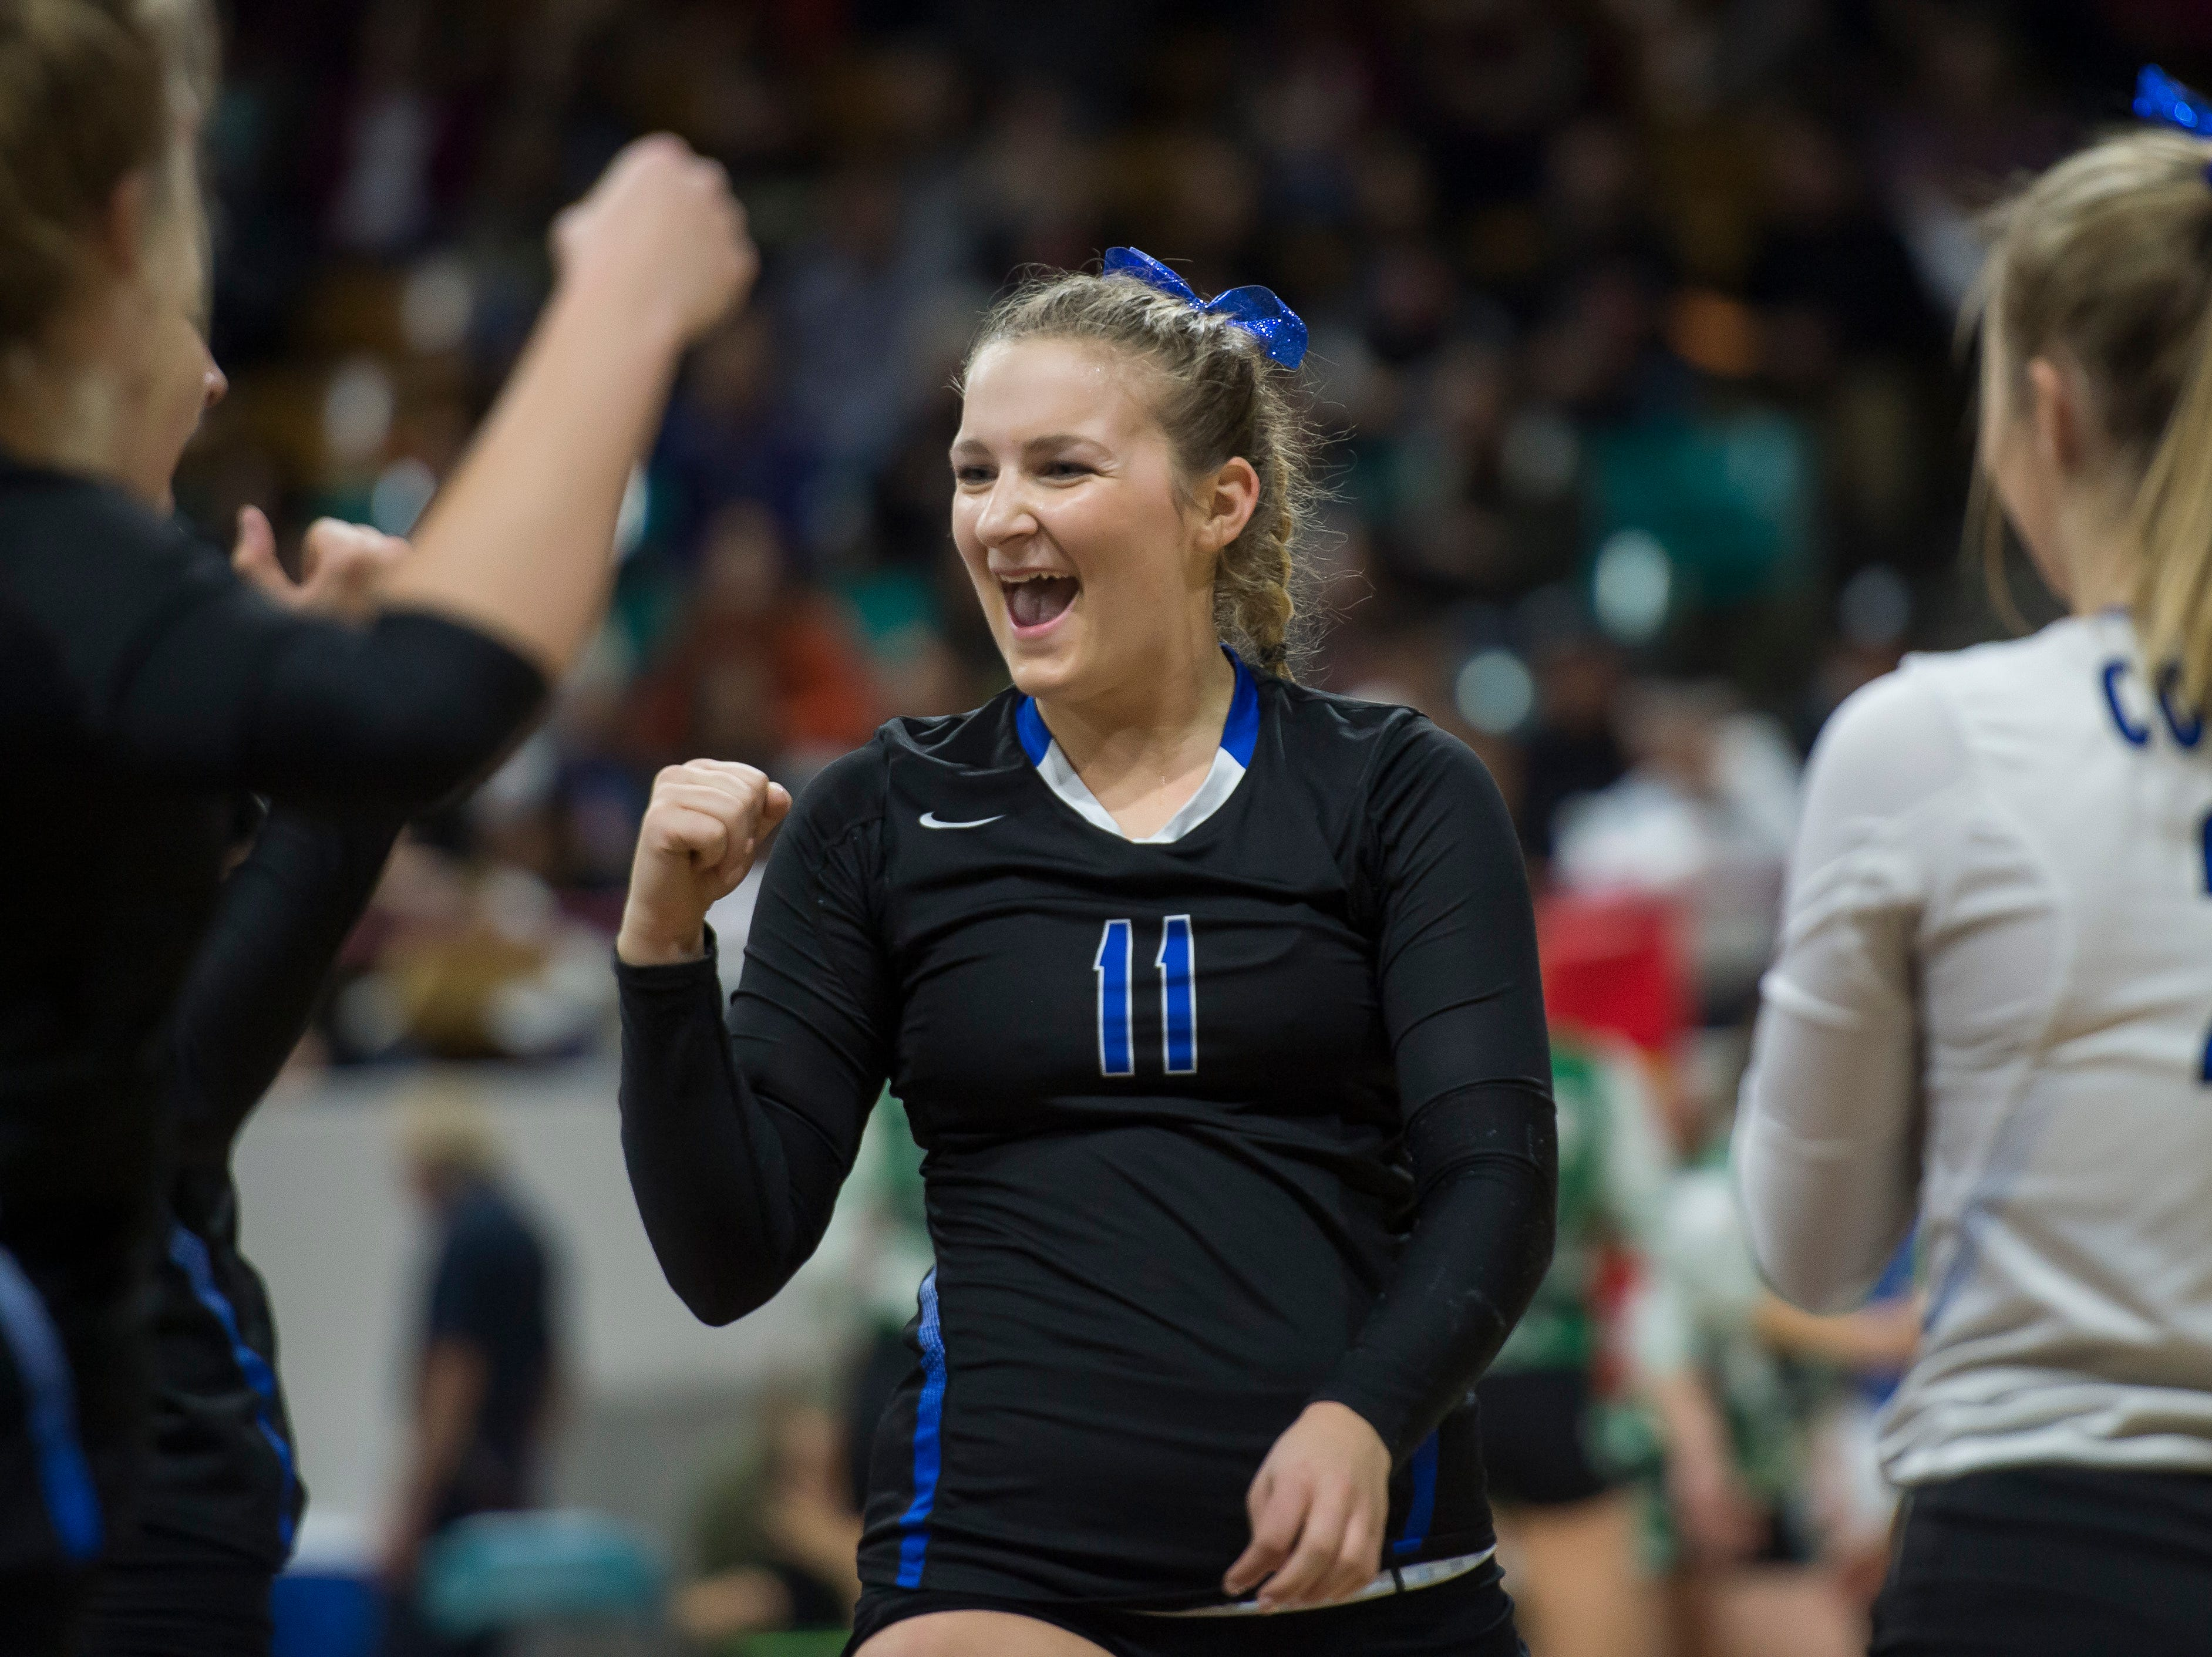 Resurrection Christian senior Bryce Lienemann (11) celebrates a point with teammates during a first round state game against Faith Christian on Thursday, Nov. 8, 2018, at the Denver Coliseum in Denver, Colo.